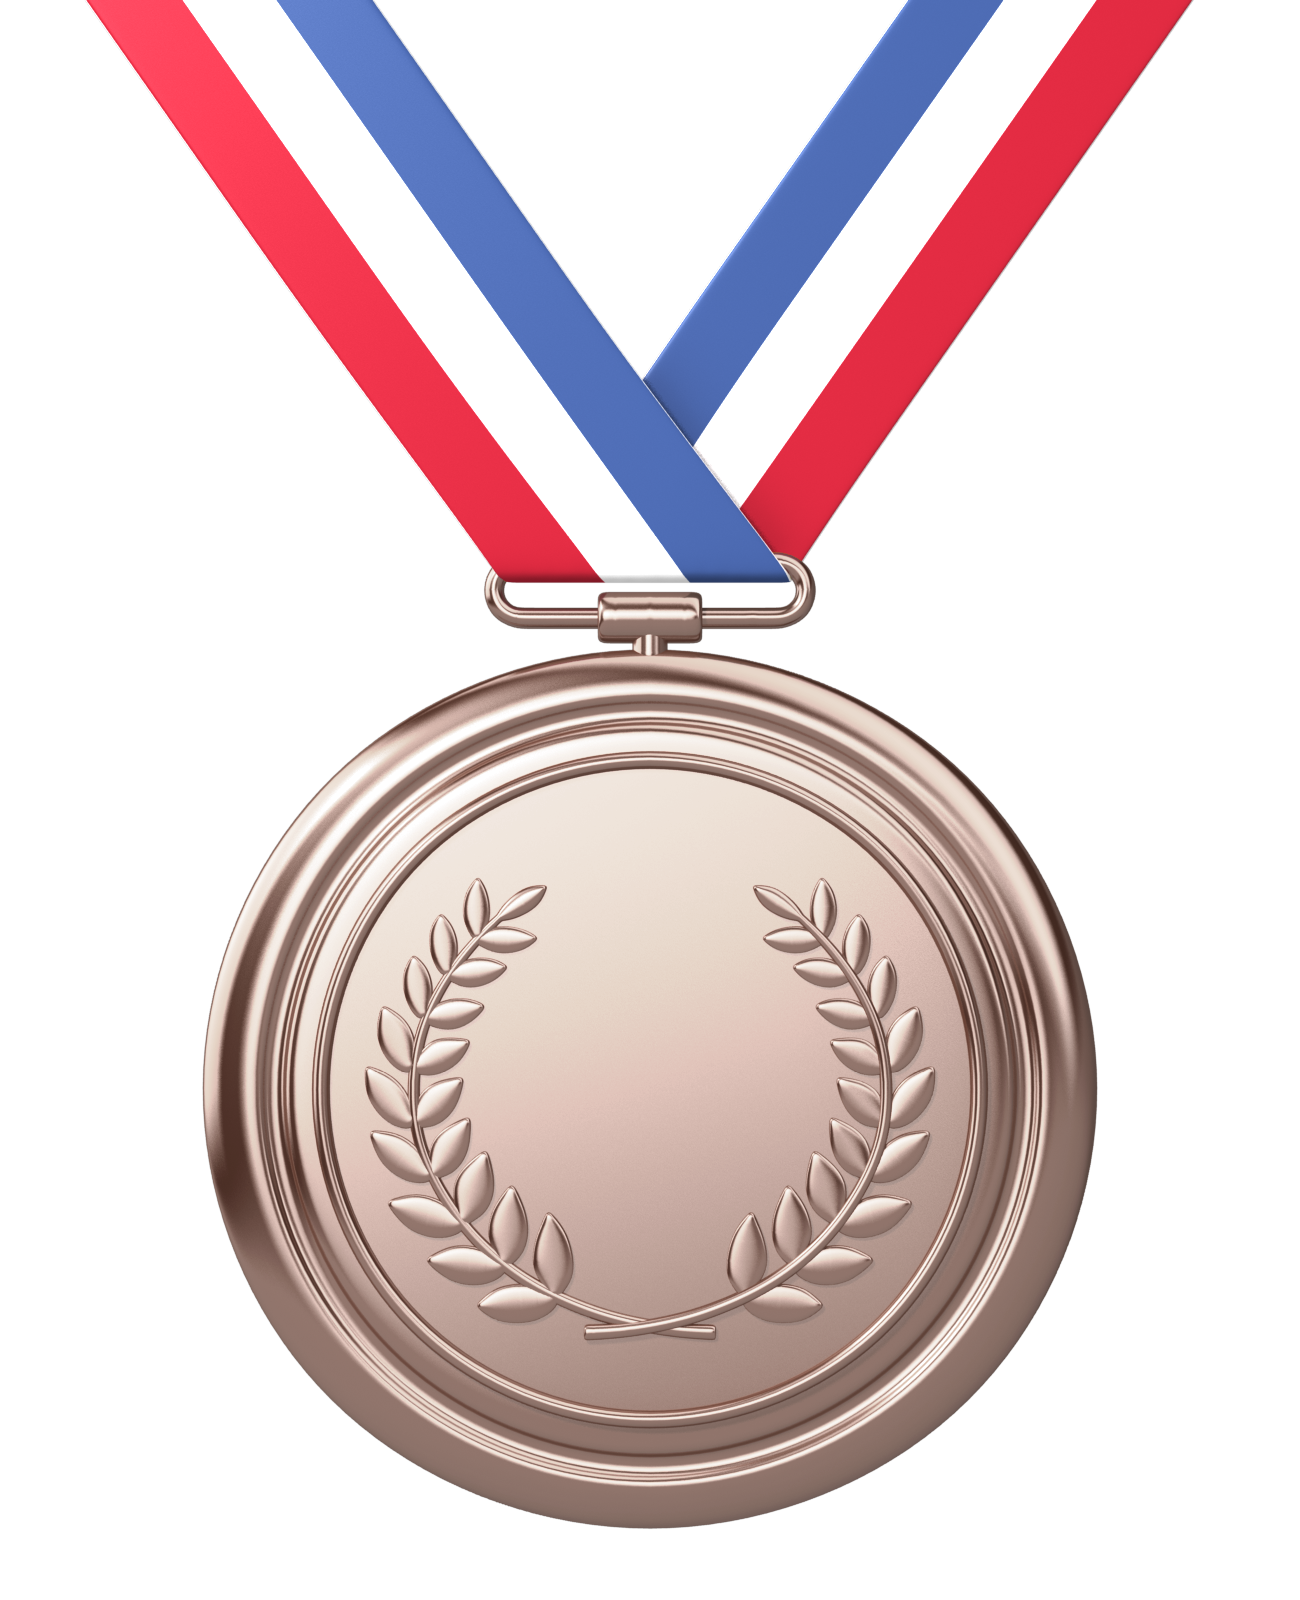 Silver star medal clipart graphic black and white stock Gold medal free PNG images clipart graphic black and white stock